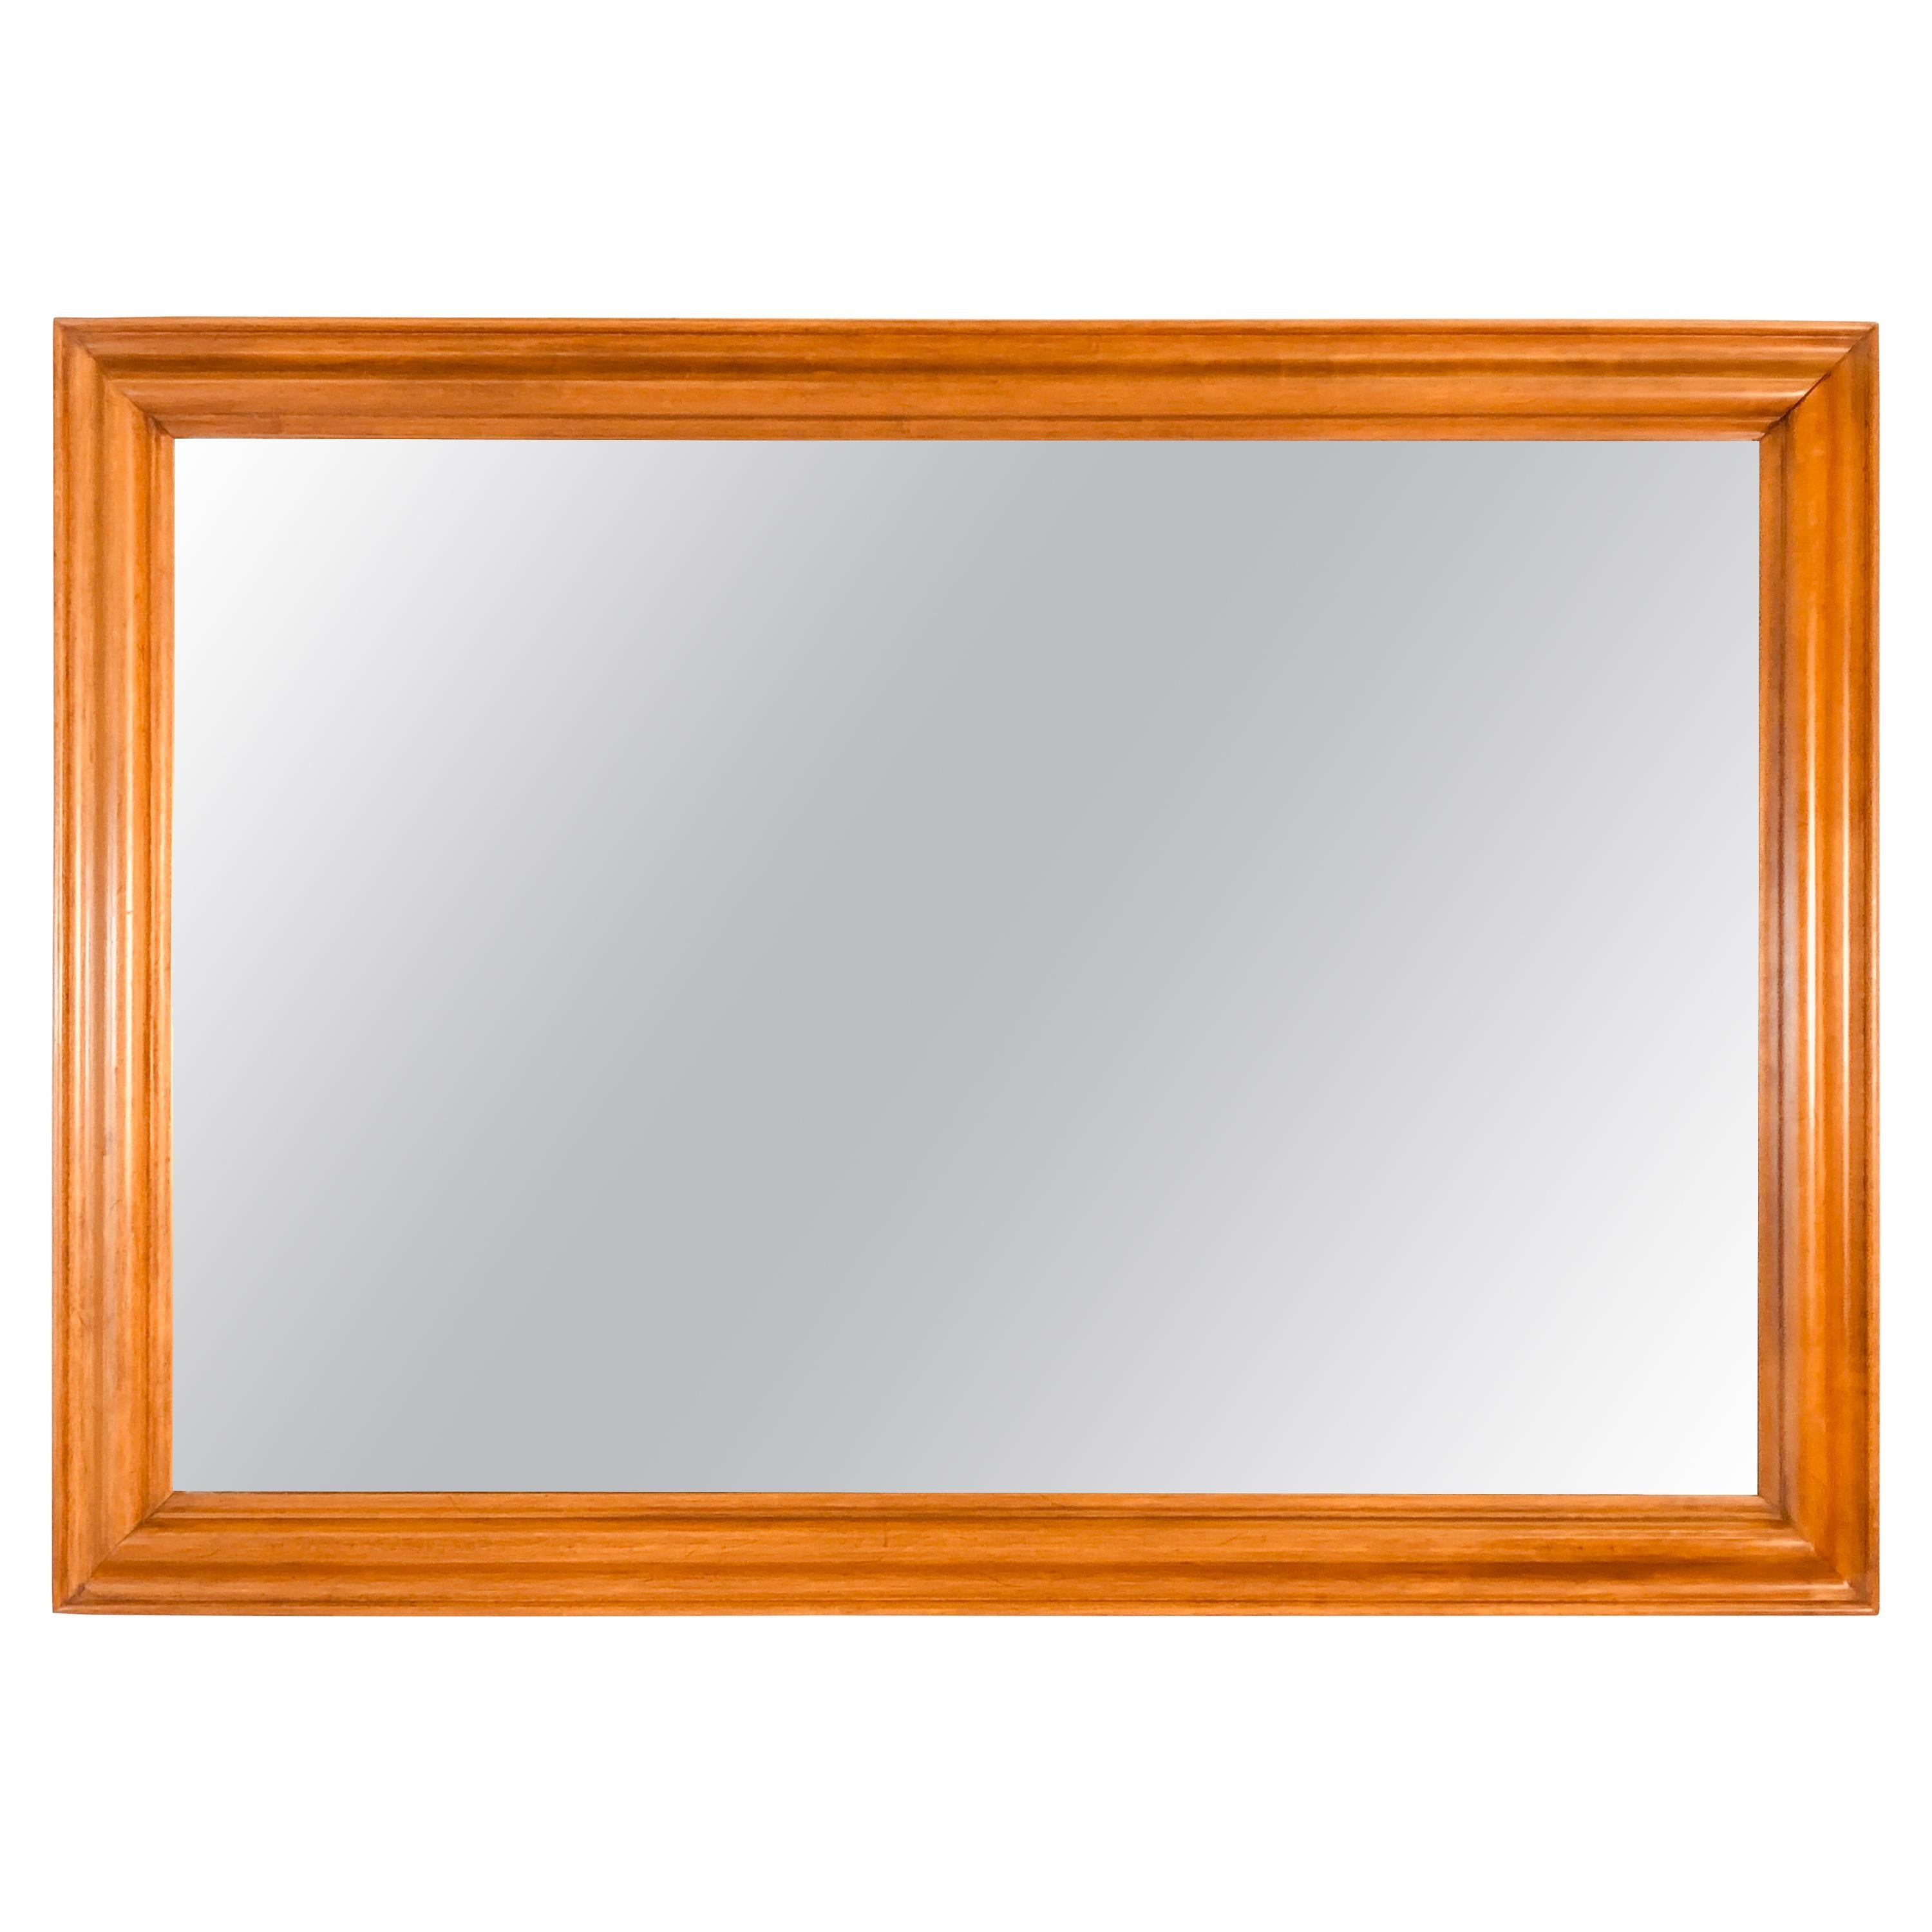 1960s Large Maple Wood Wall Mirror